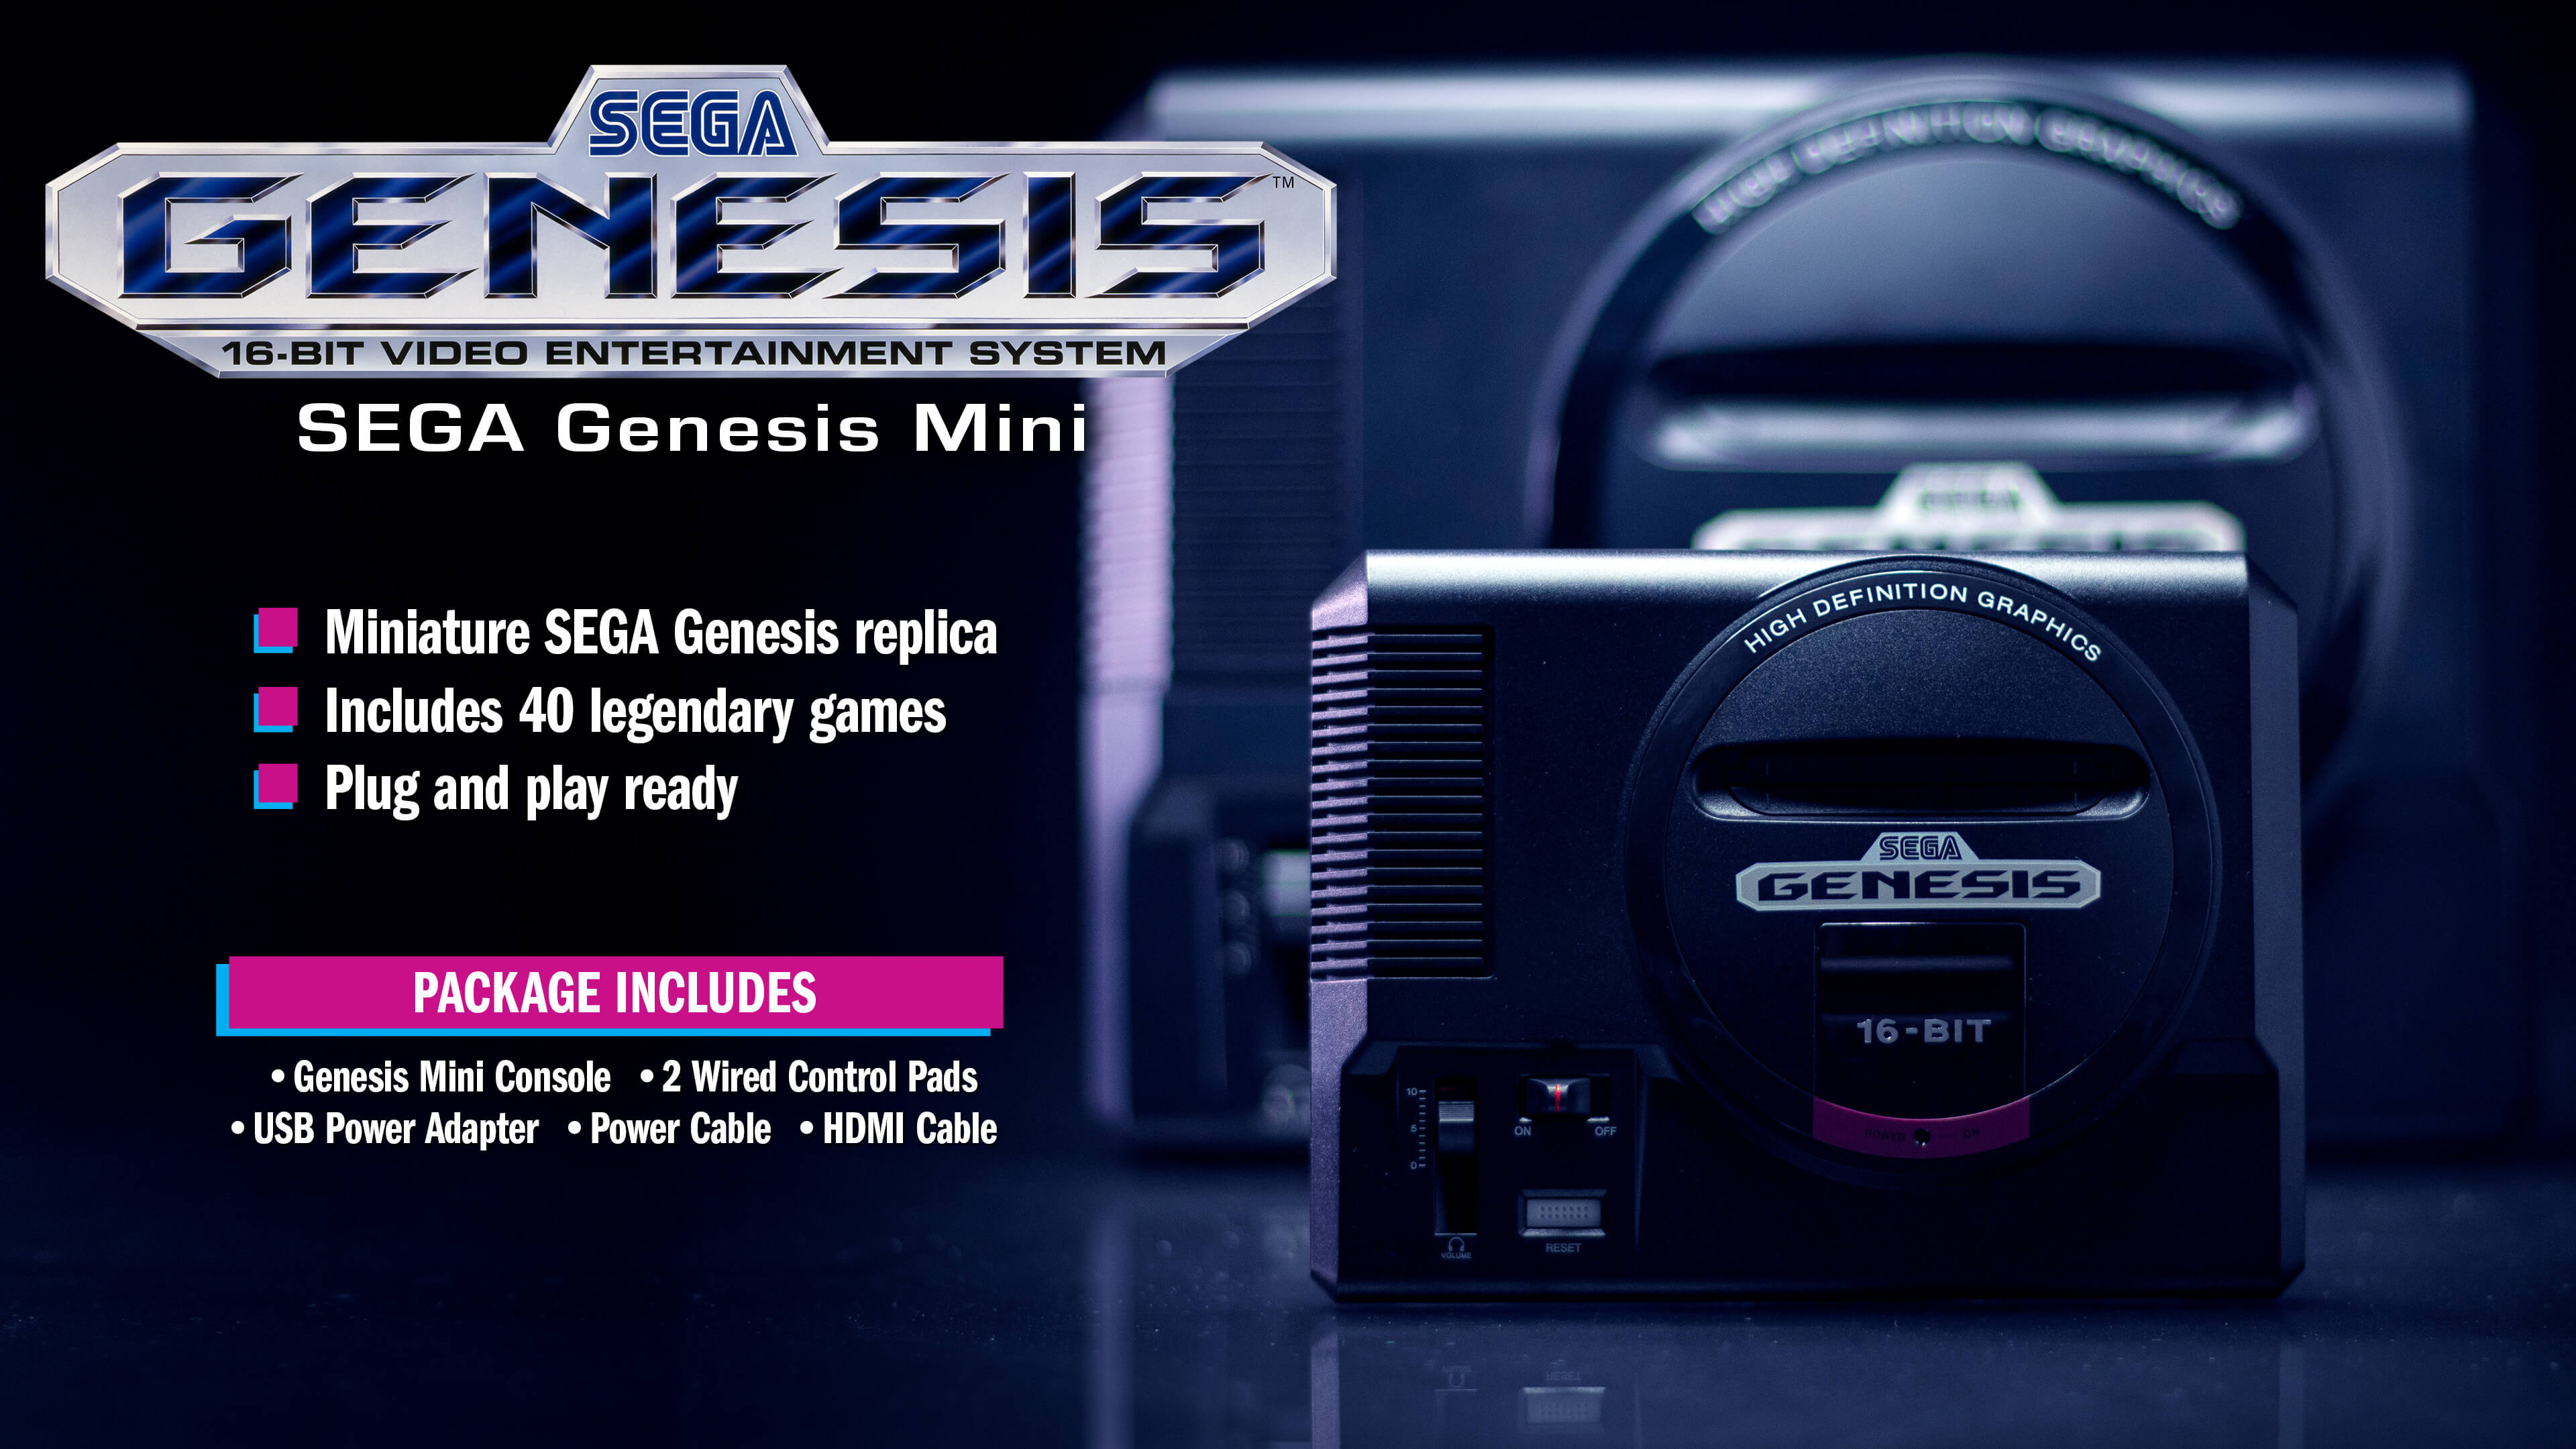 Sega's 'Sega Genesis Mini' Console Launches with 40 Games on September 19